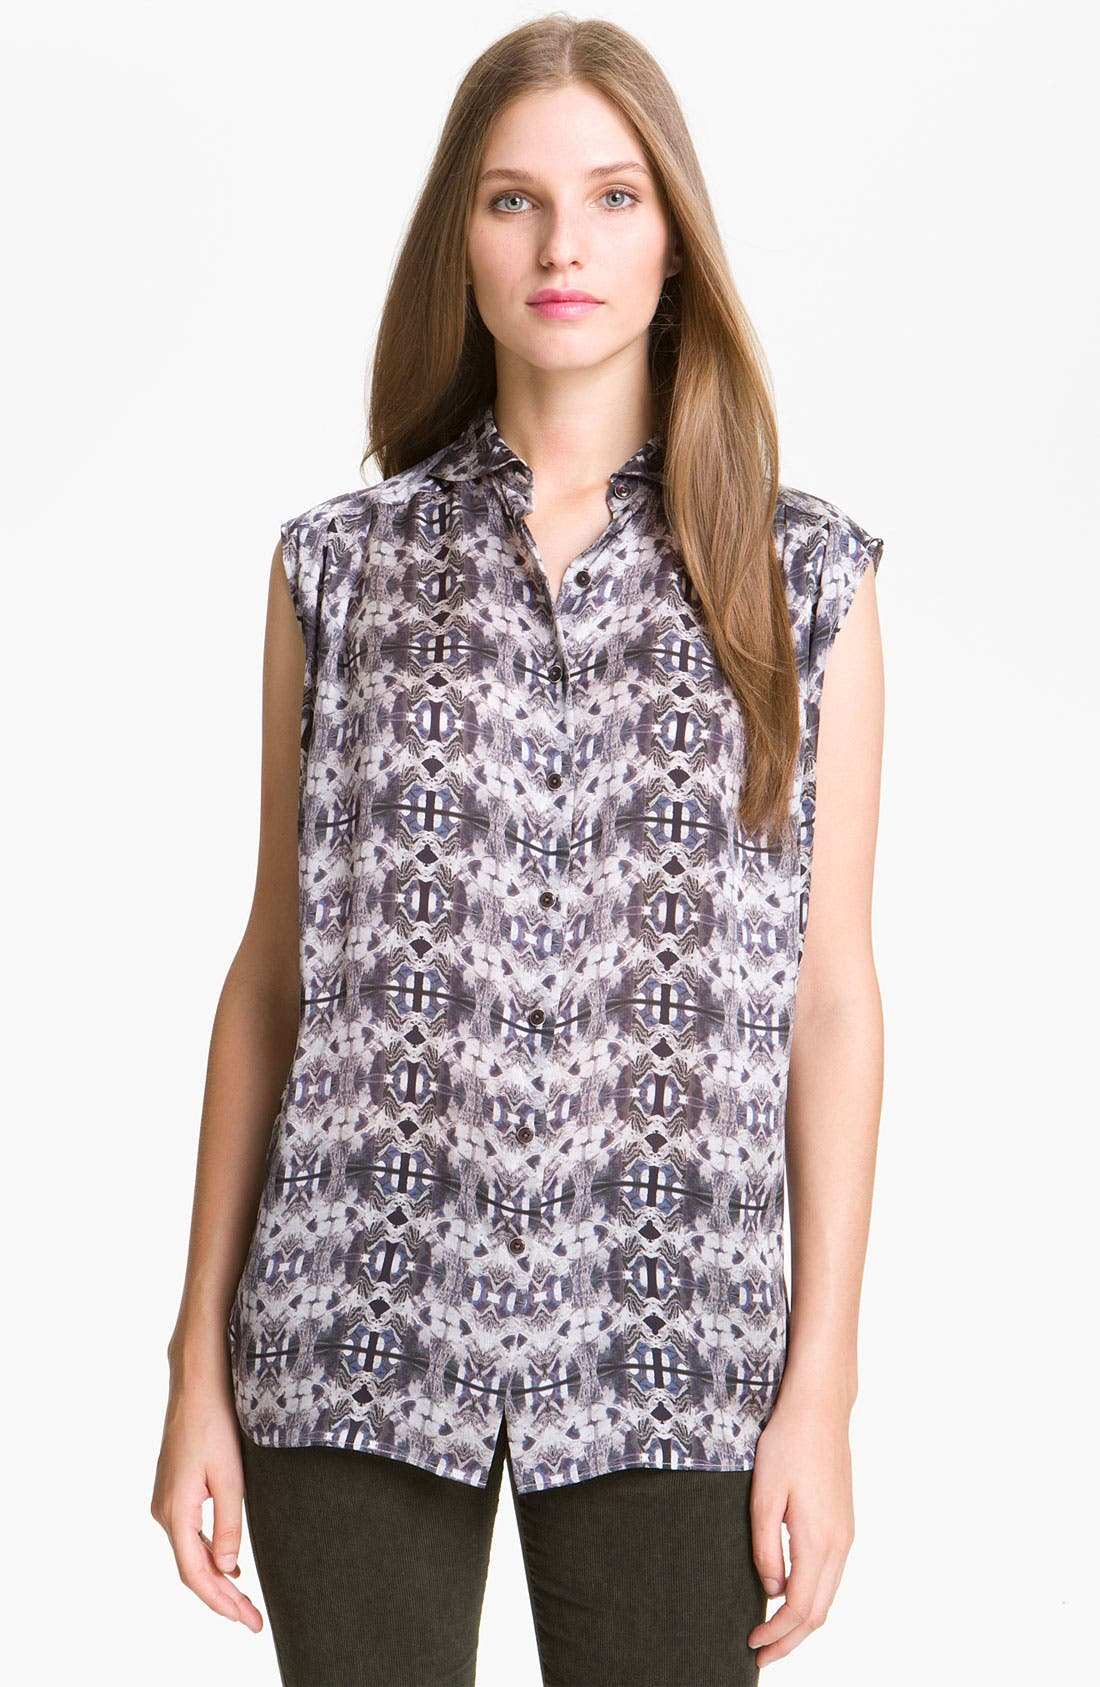 Alternate Image 1 Selected - Theyskens' Theory 'Braque Imoges' Blouse (Nordstrom Exclusive)